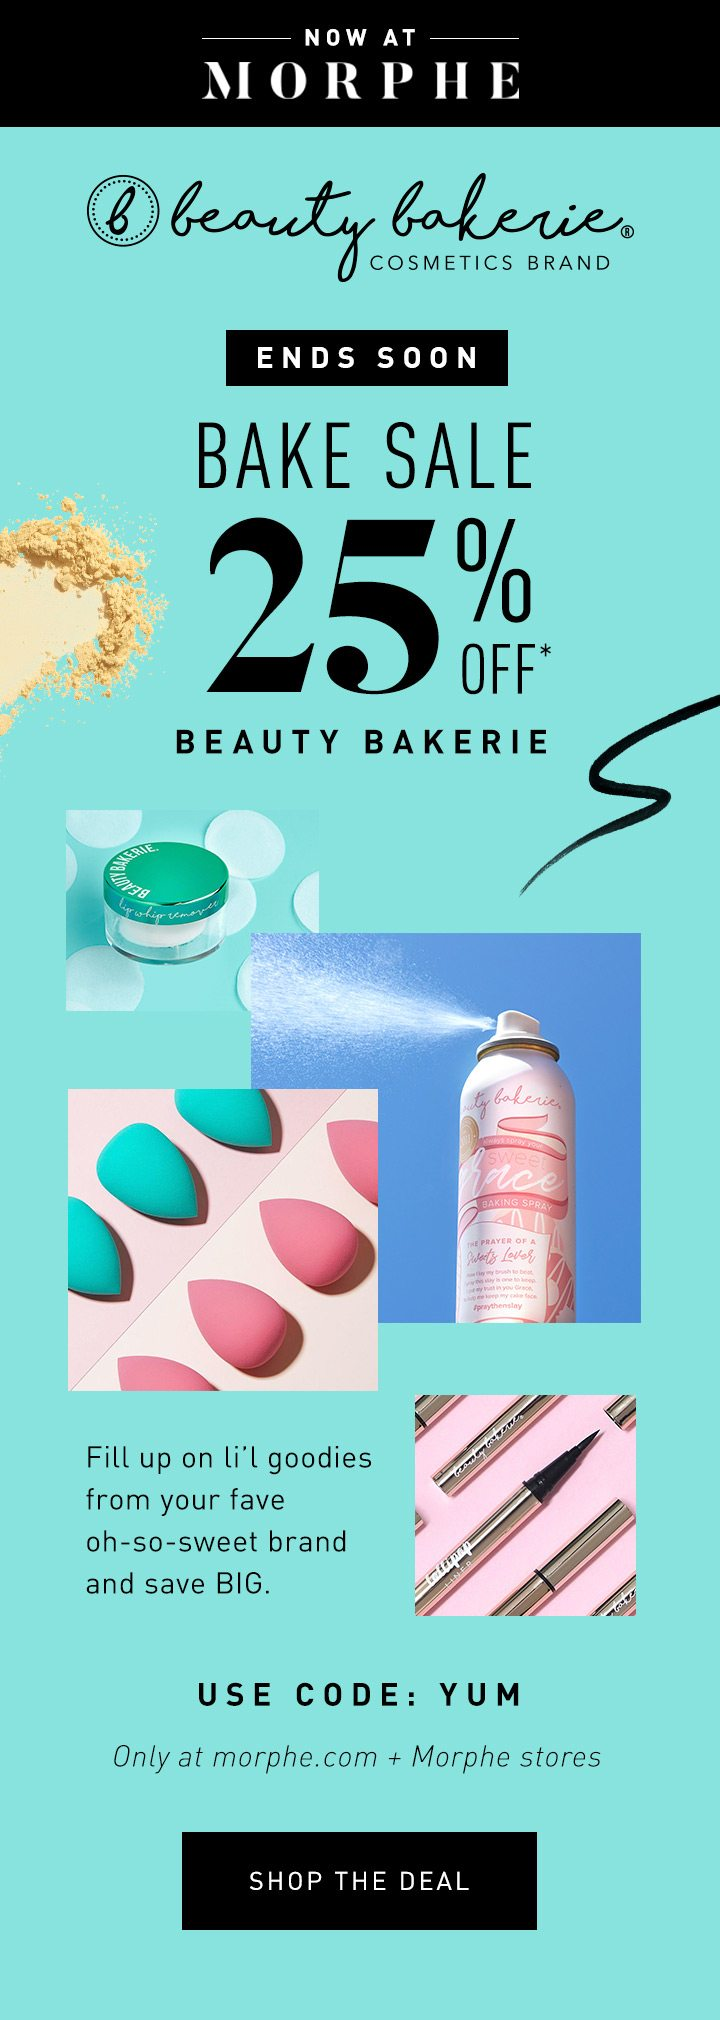 NOW AT MORPHE ENDS SOON BAKE SALE 25% OFF* BEAUTY BAKERIE Fill up on li'l goodies from your fave oh-so-sweet brand and save BIG. USE CODE: YUM Only at morphe.com + Morphe stores SHOP THE DEAL